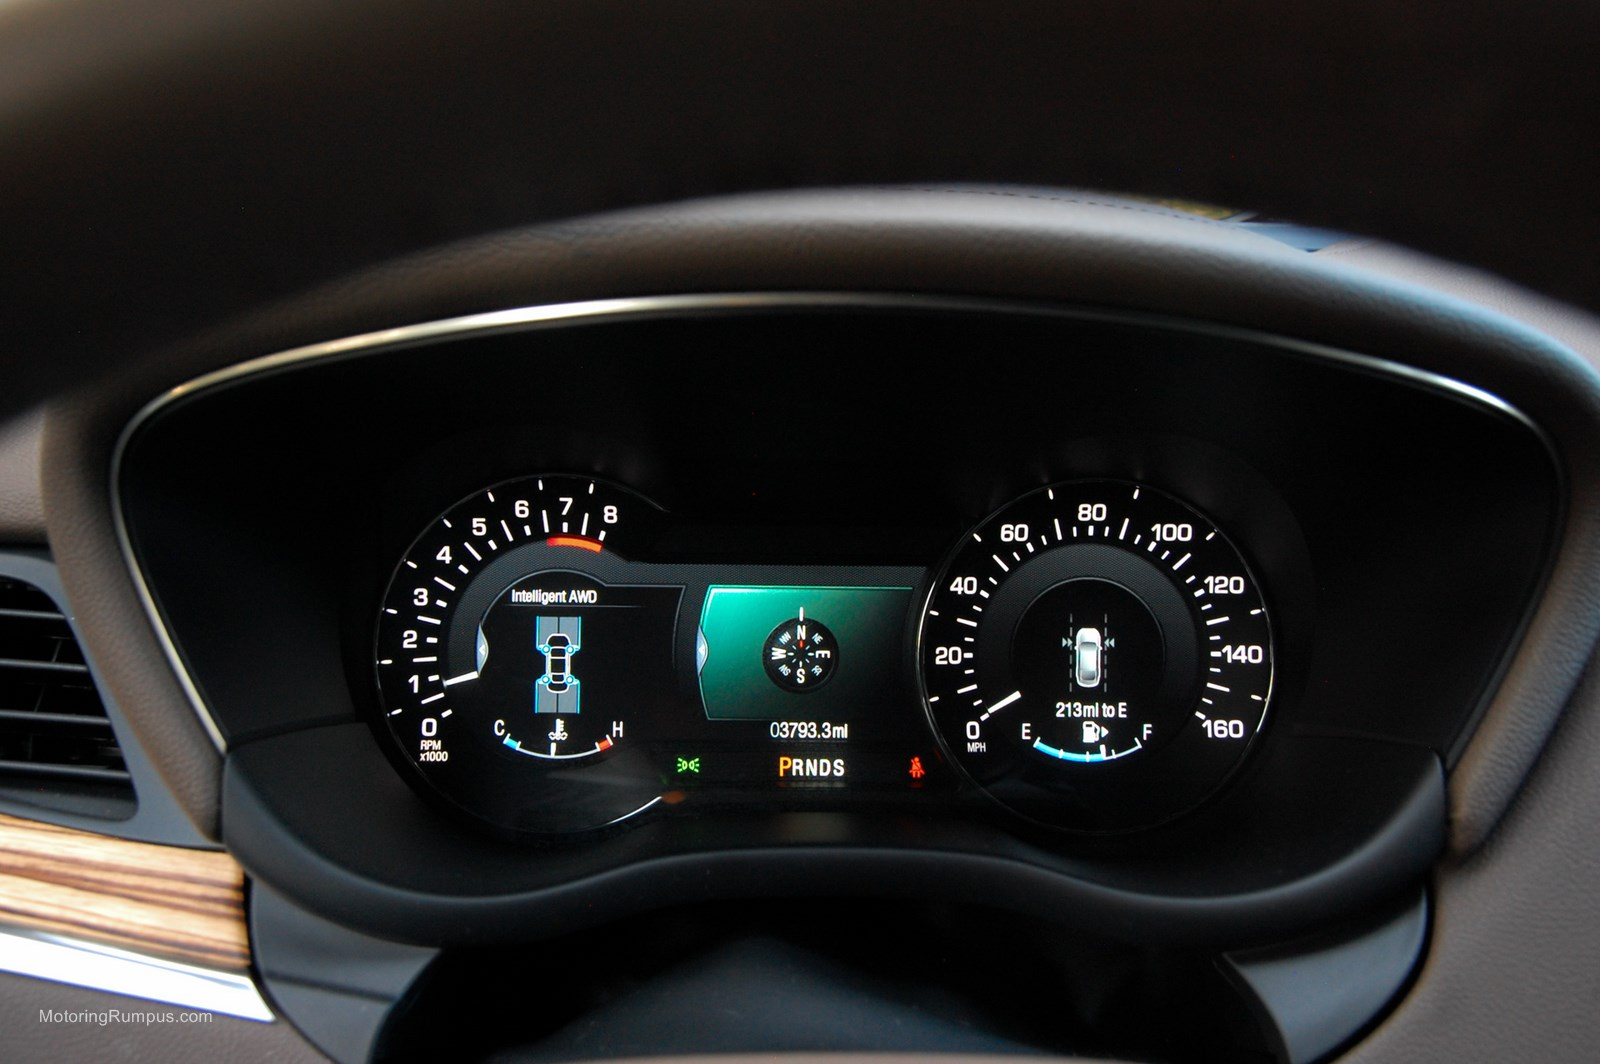 2015 Lincoln MKC Instrument Cluster - Motoring Rumpus